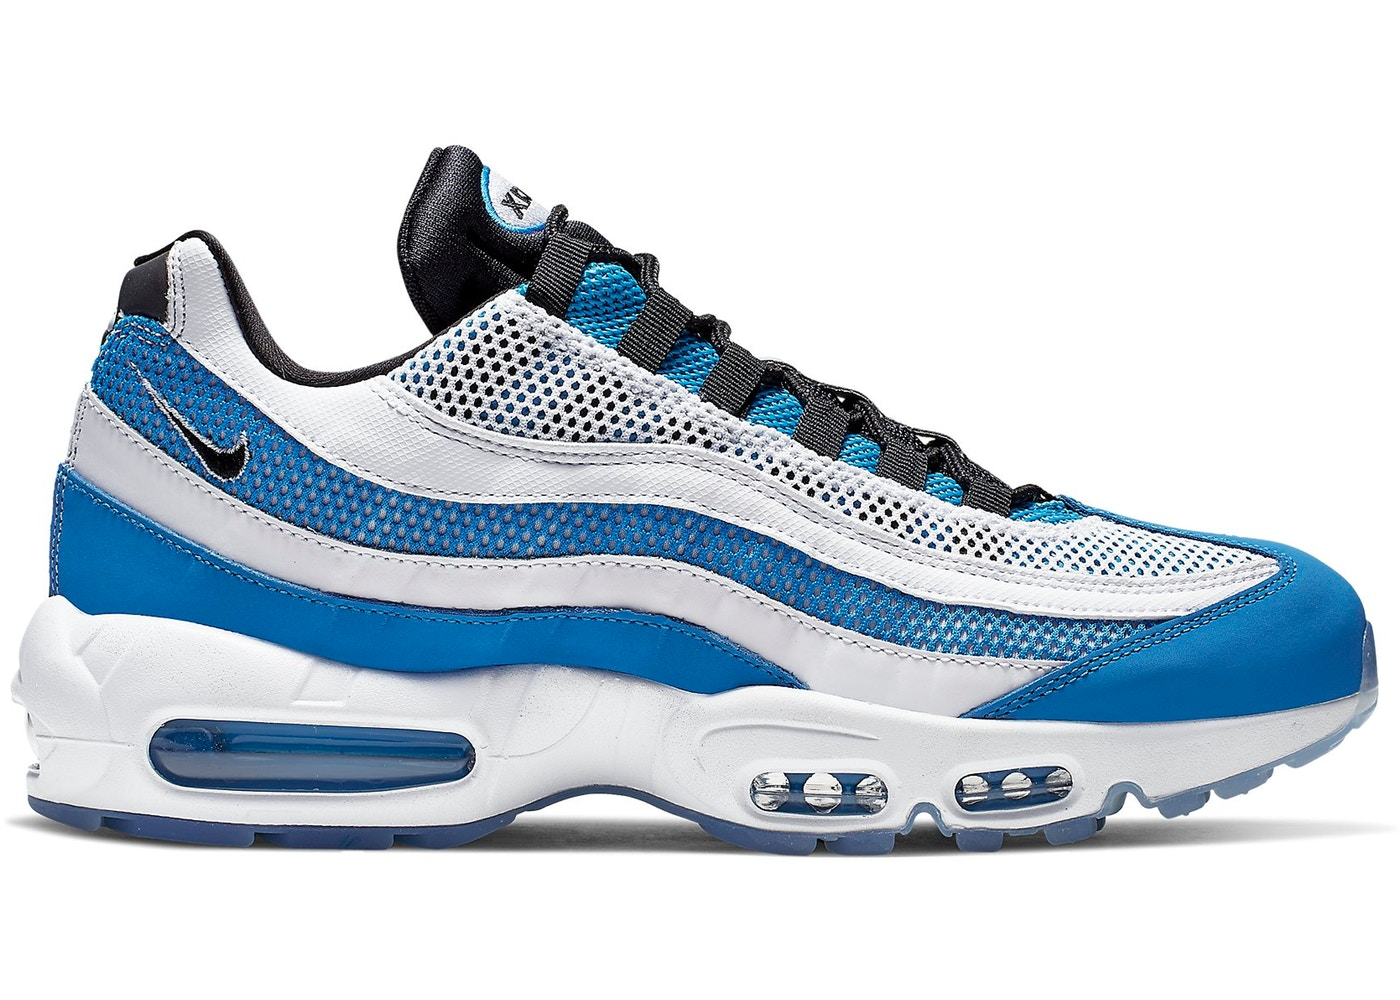 9261eef2cb Sell. or Ask. Size: 13. View All Bids. Air Max 95 Photo Blue Black White